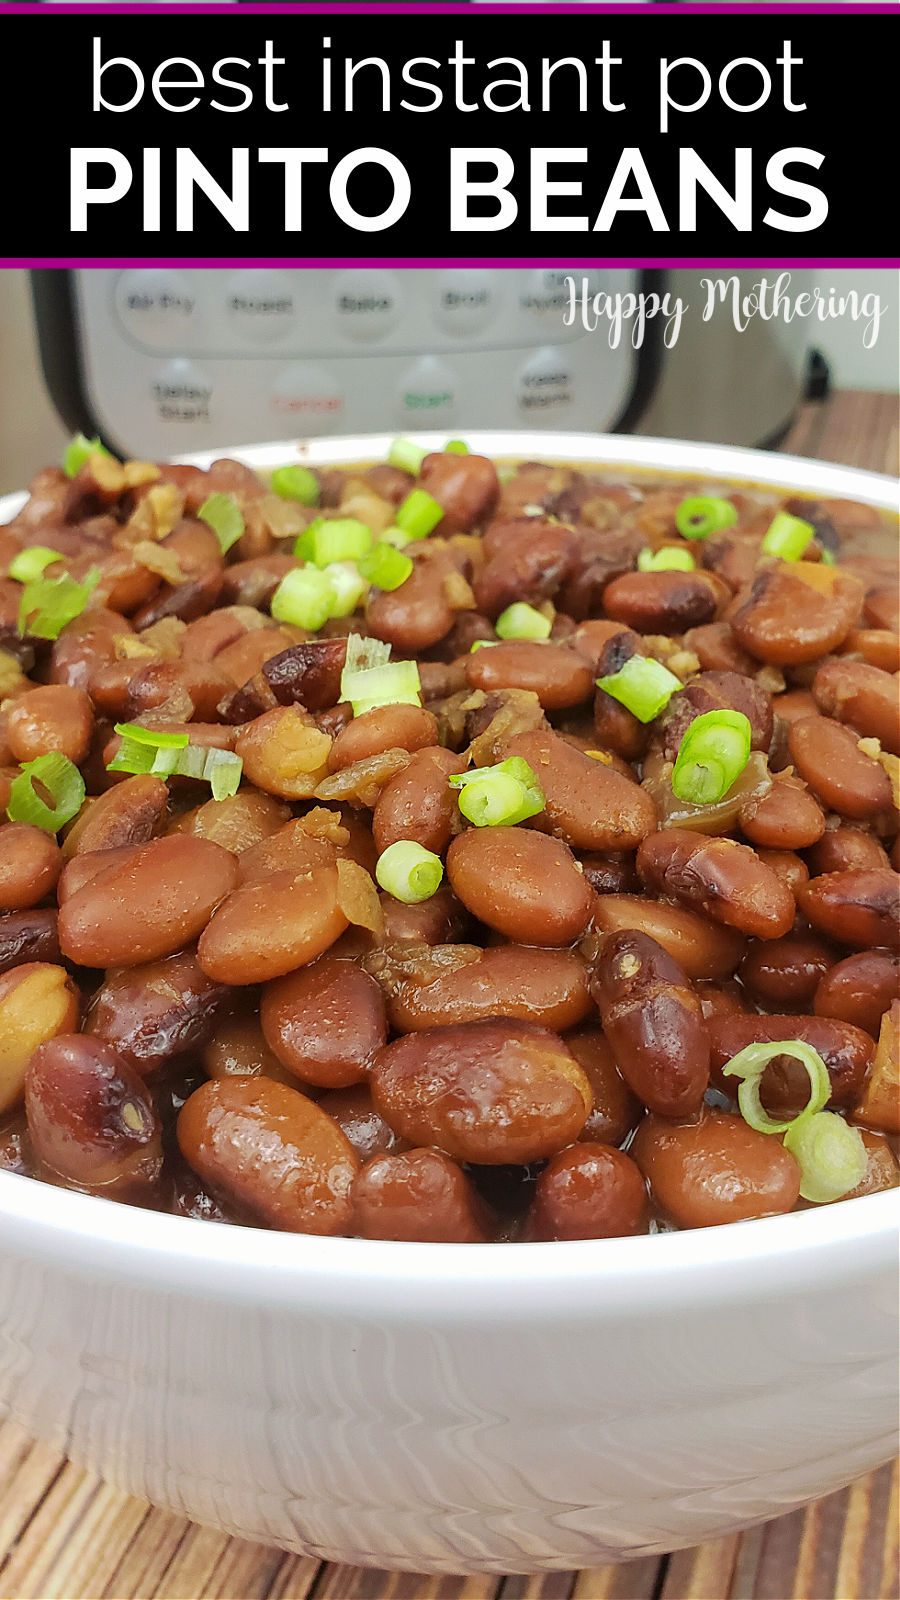 Large white serving bowl filled with cooked pinto beans in front of Instant Pot.